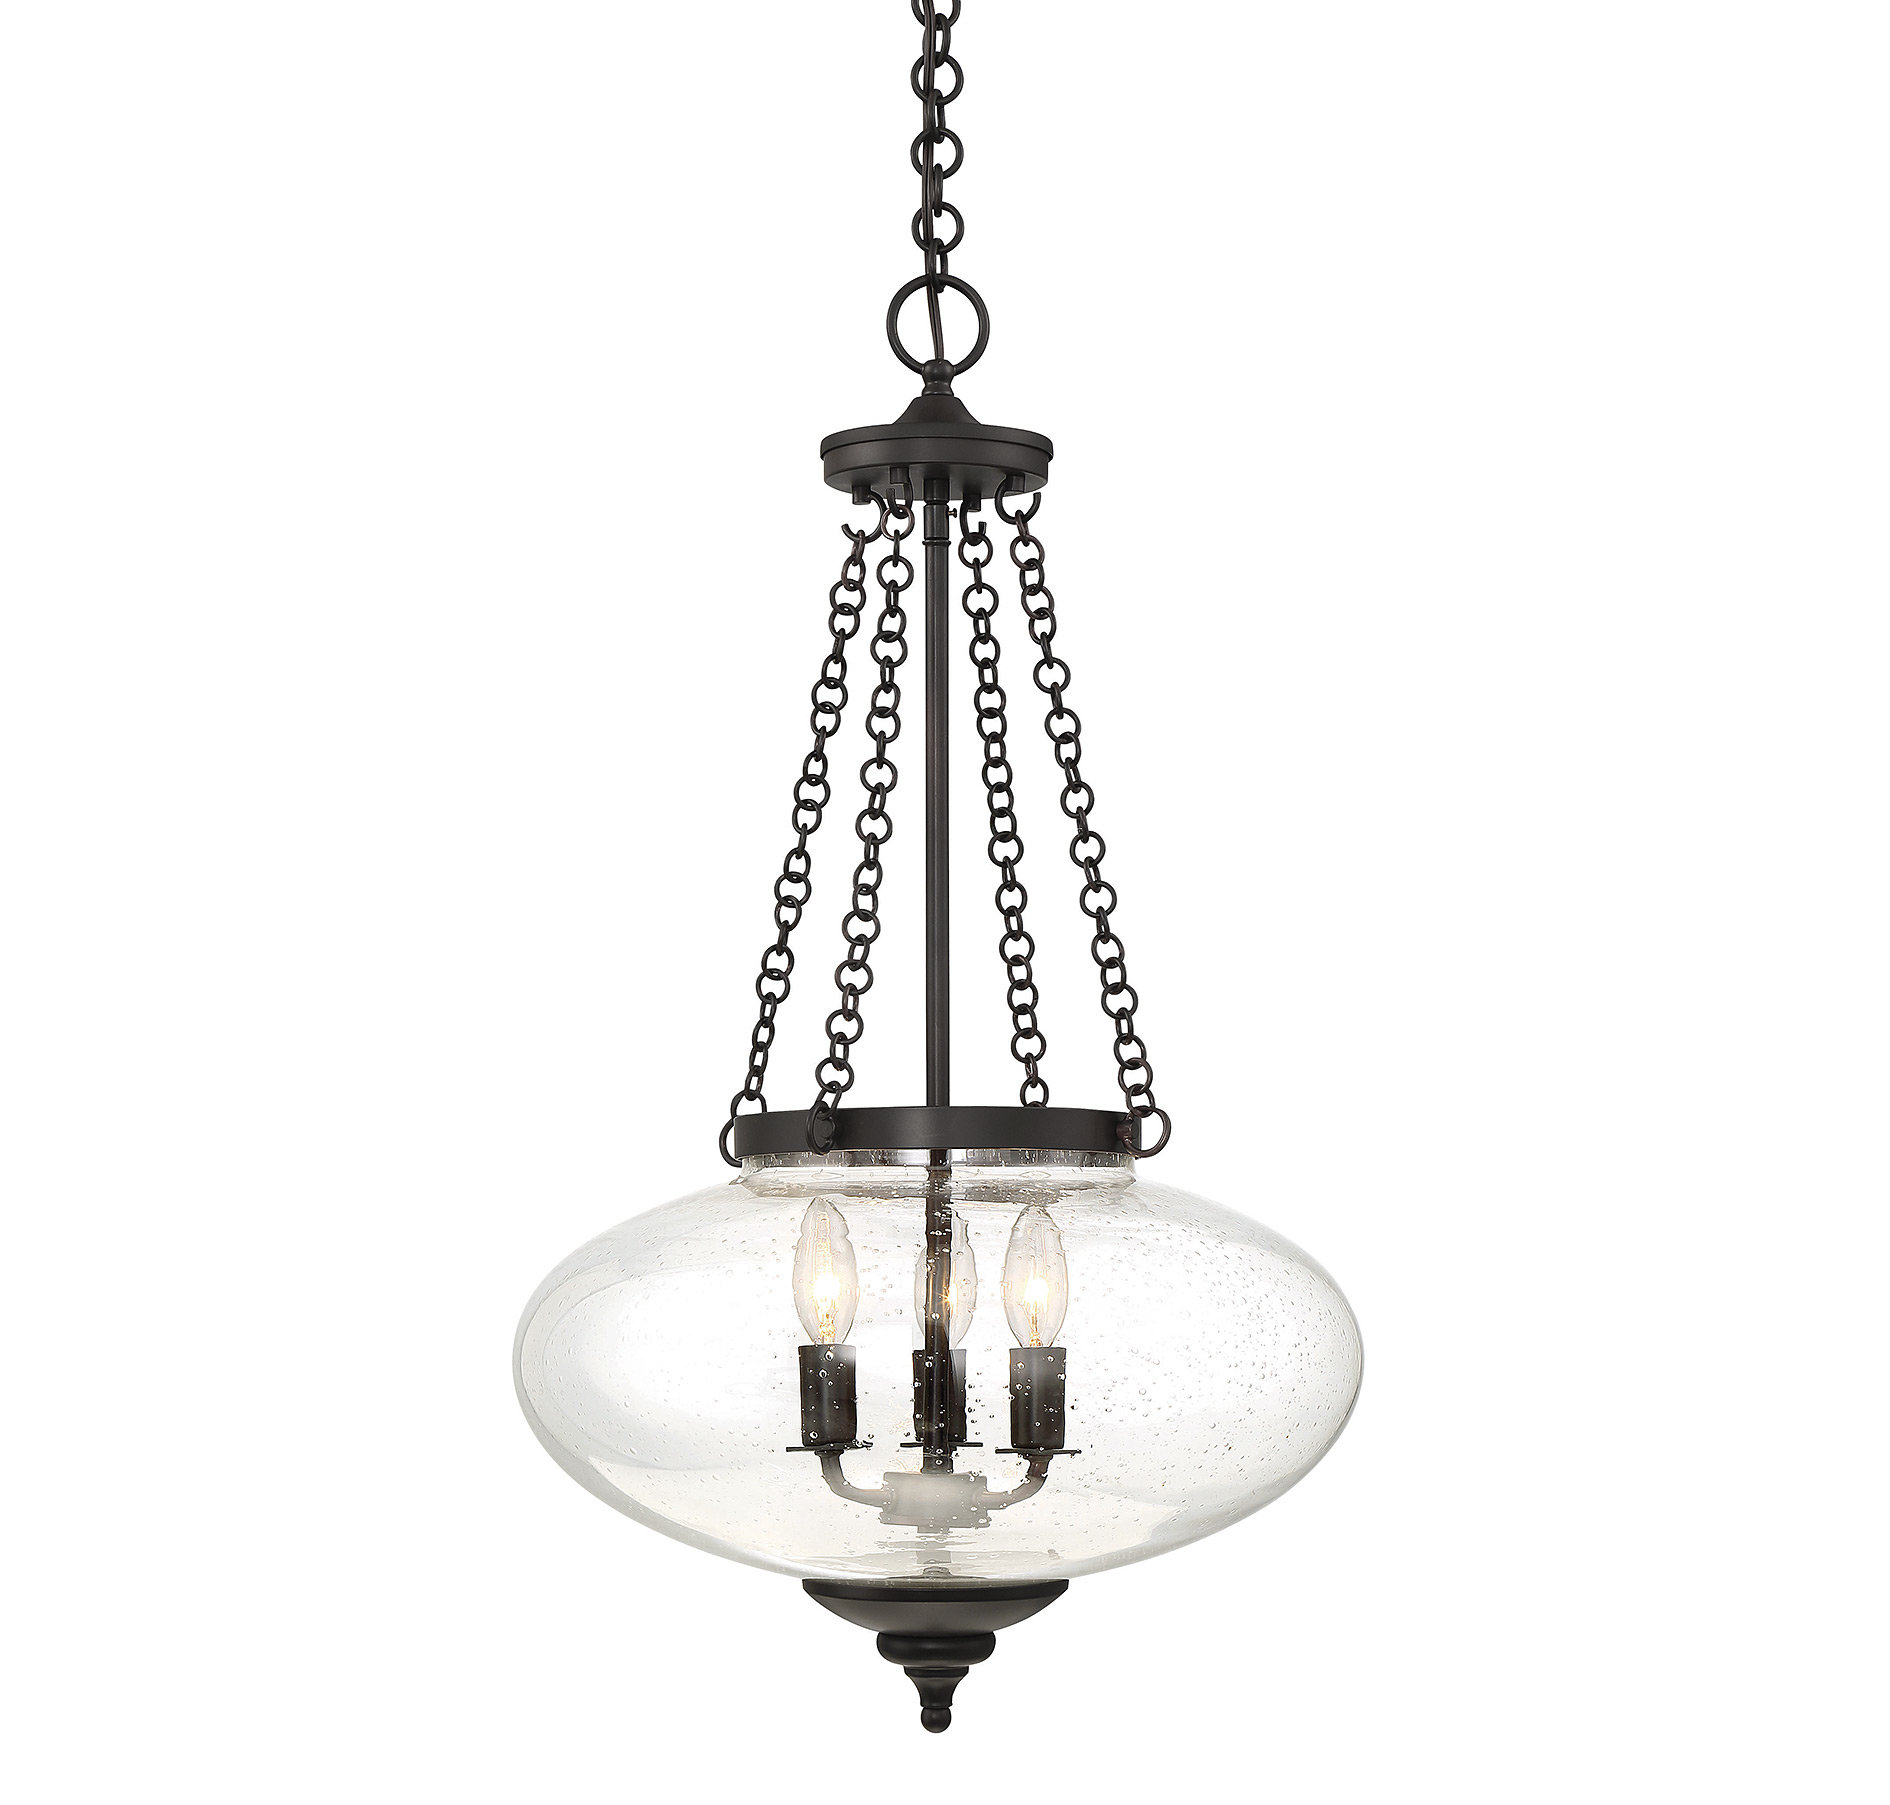 Fortunat 3-Light Urn Pendant regarding Spokane 1-Light Single Urn Pendants (Image 17 of 30)